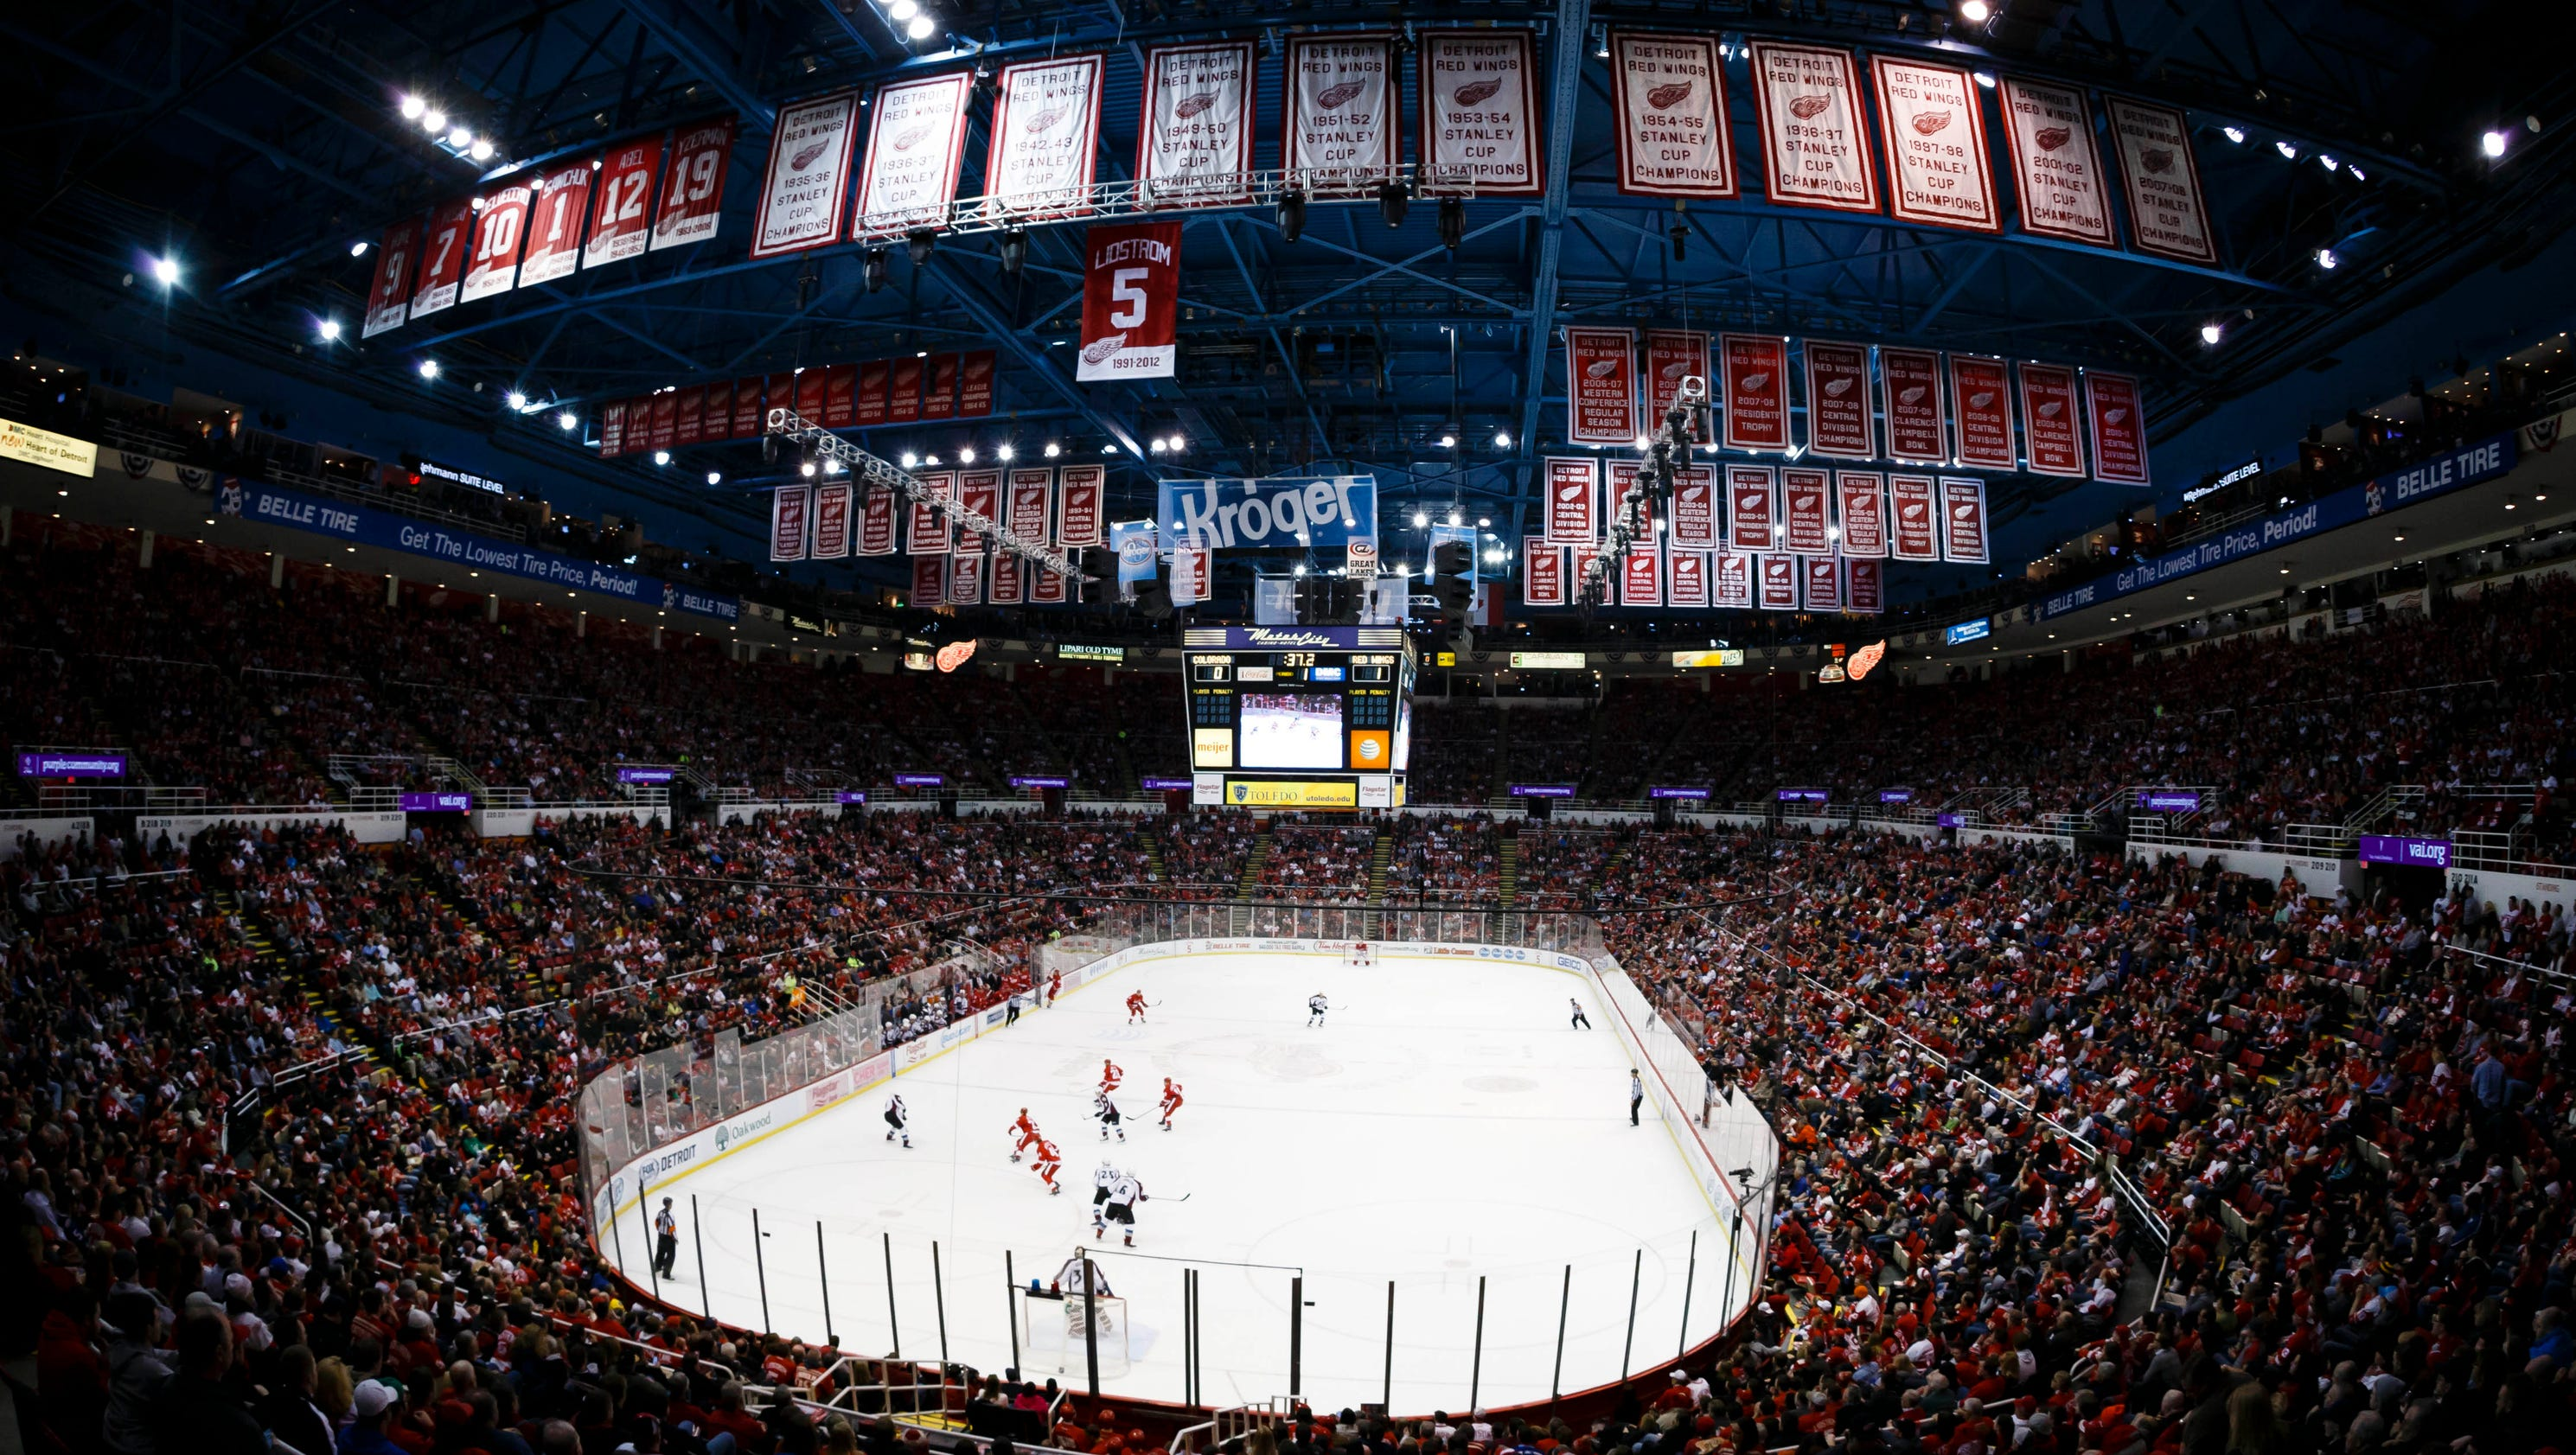 635903727788327312-usp-nhl-colorado-avalanche-at-detroit-red-wings